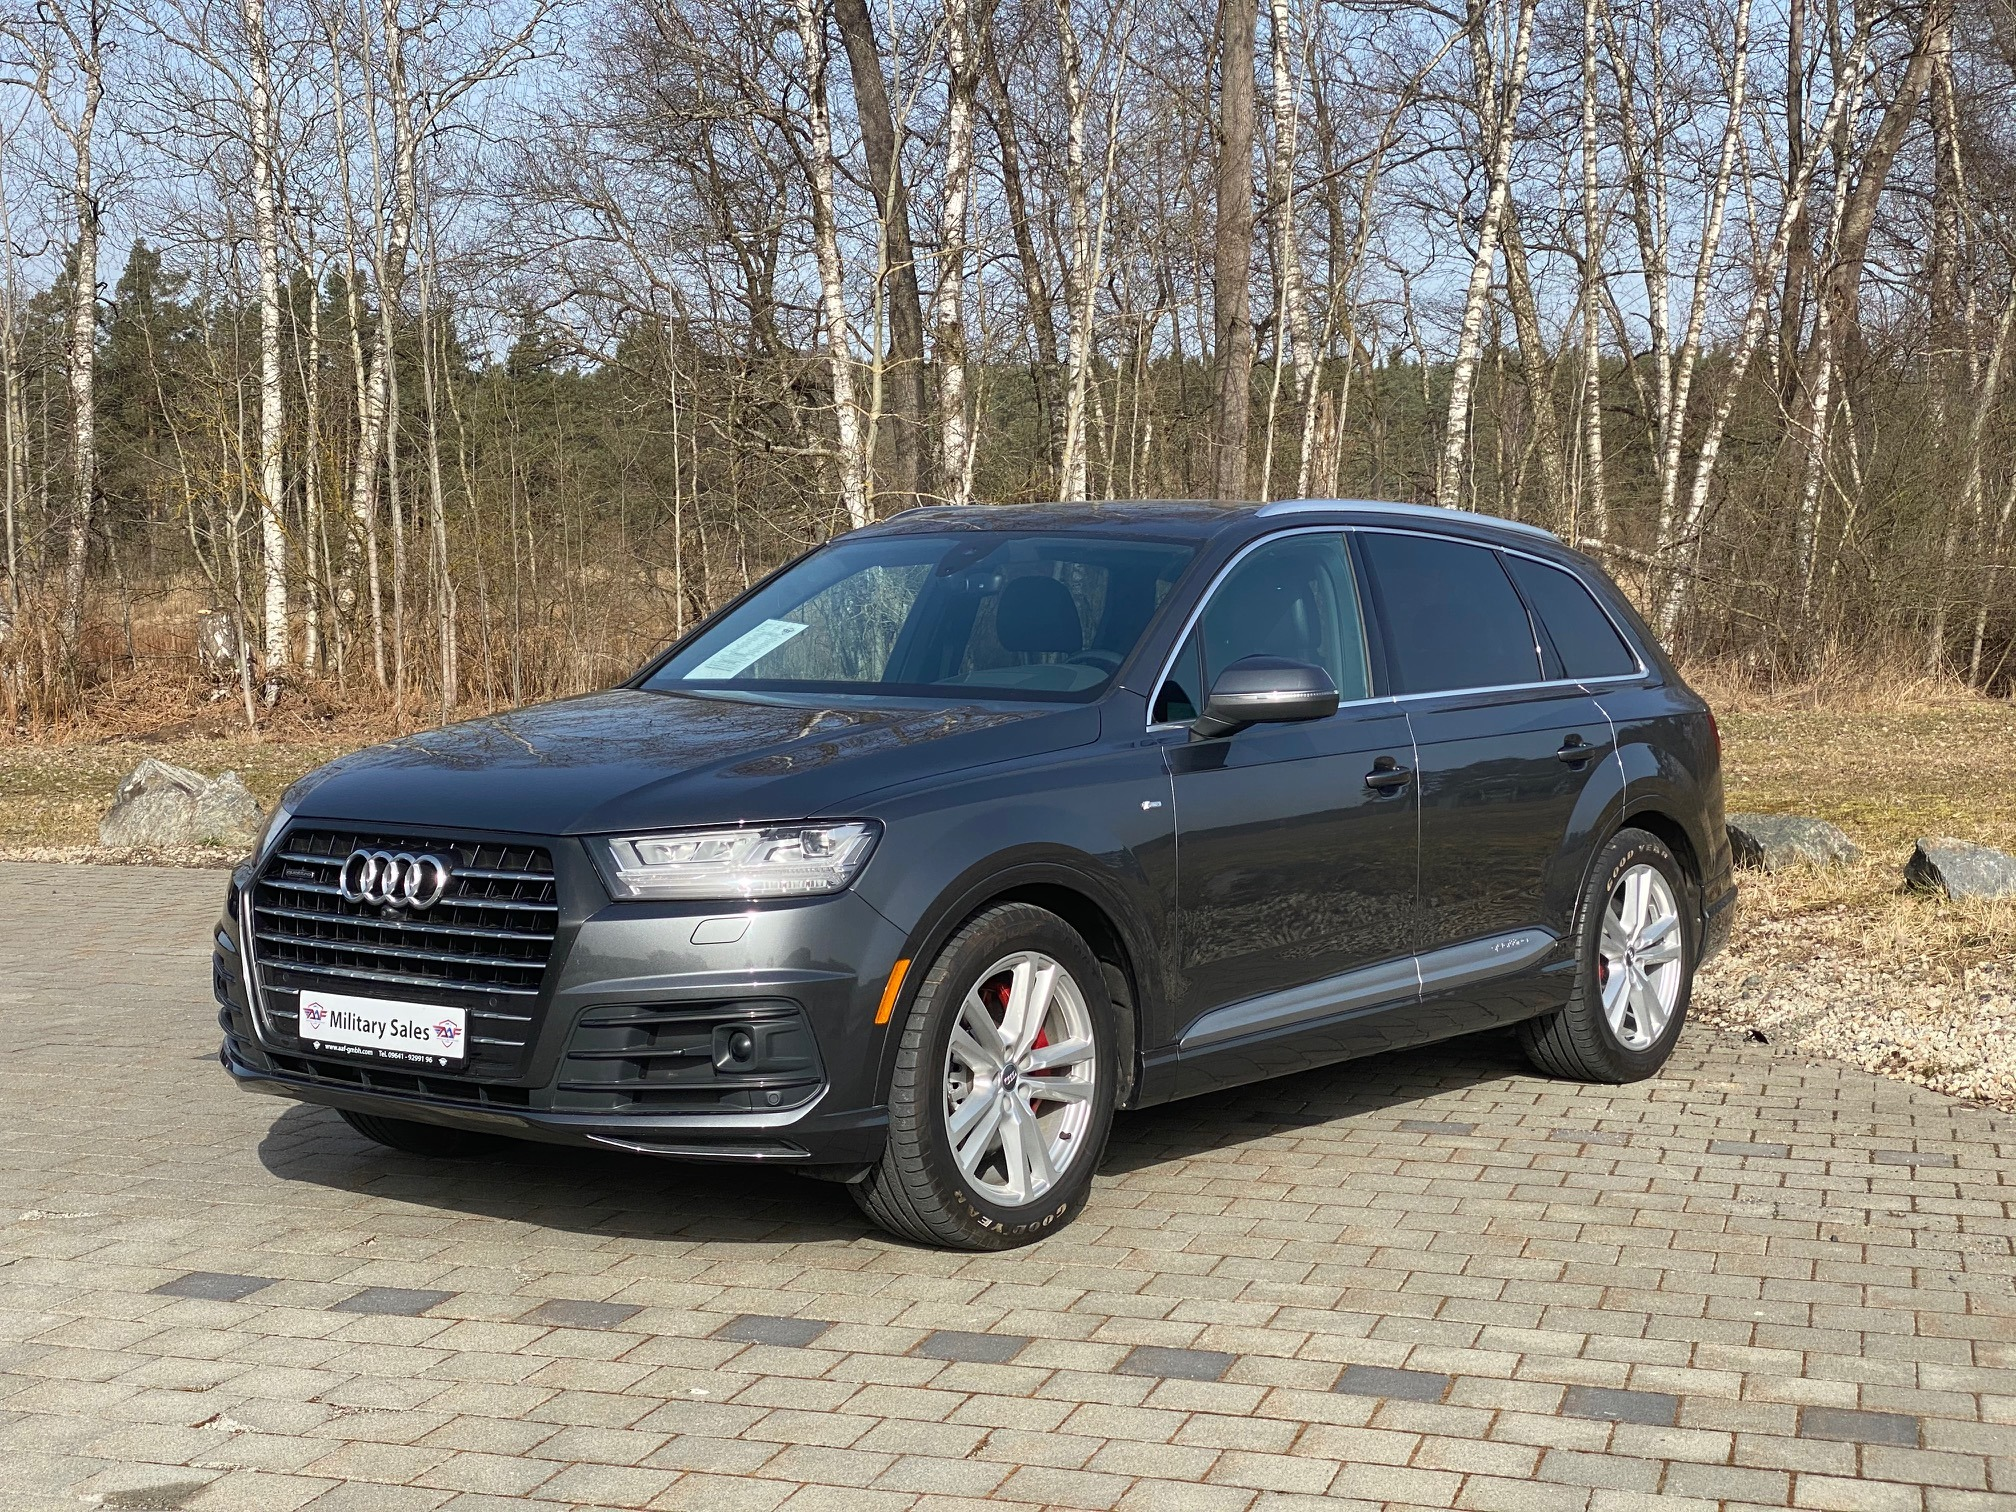 2017 Audi Q7 S-Line </br>as low as </br>$339 per paycheck